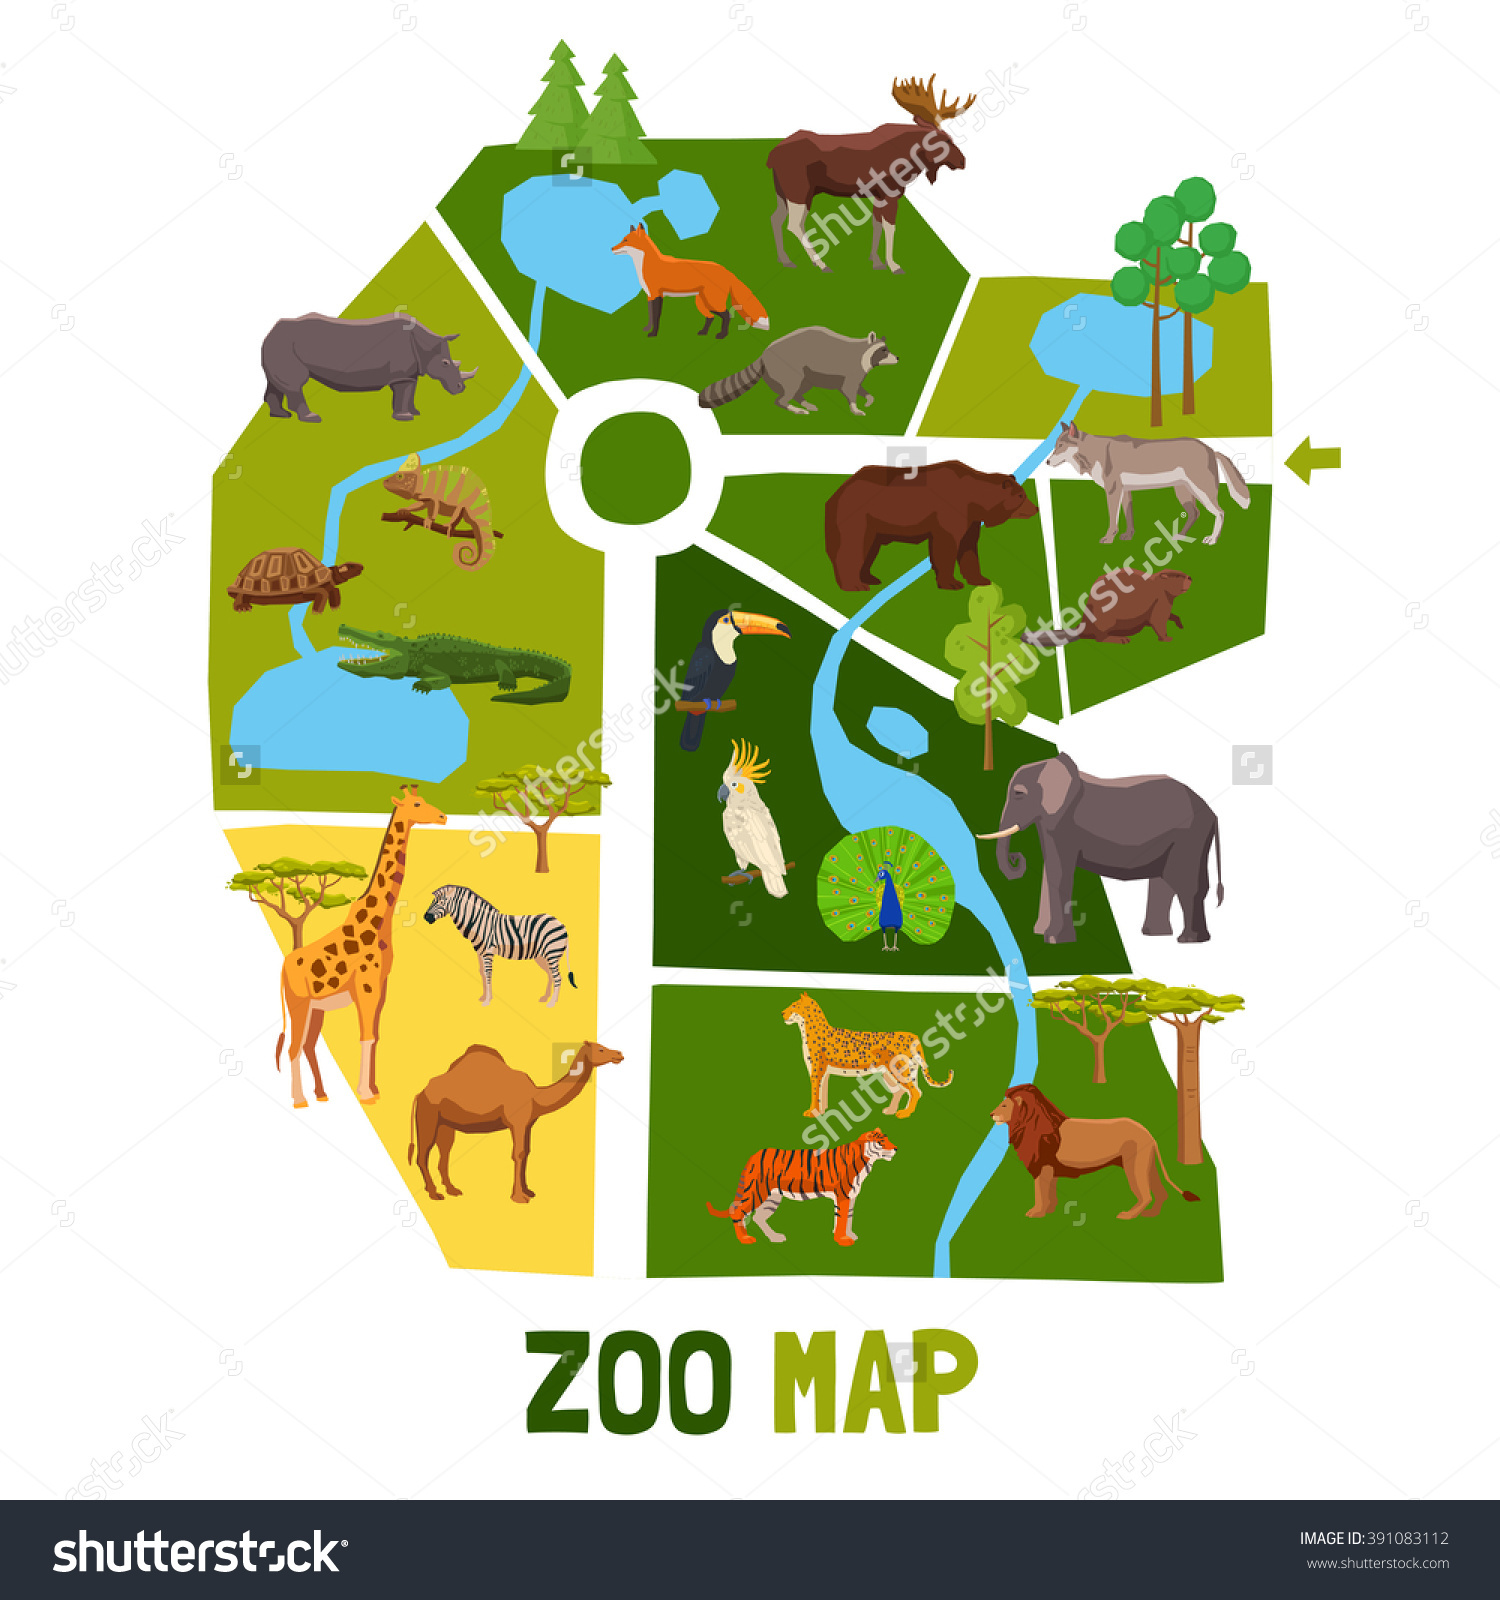 Zoo clipart zoo map Map and animals african birds